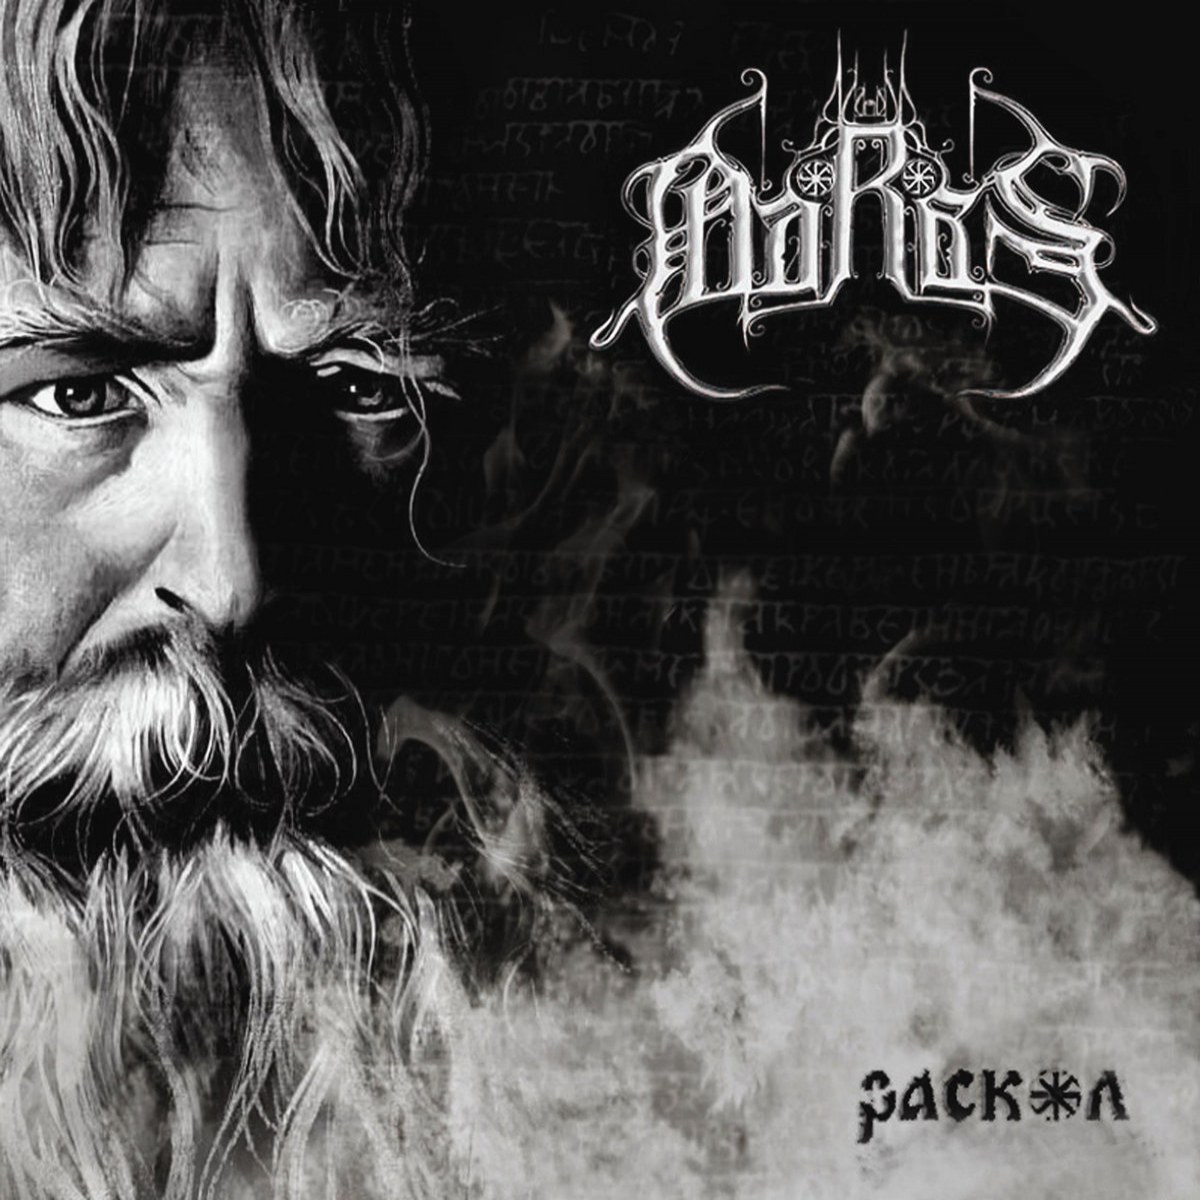 Best Macedonian Black Metal album: 'Maras - Raskol'